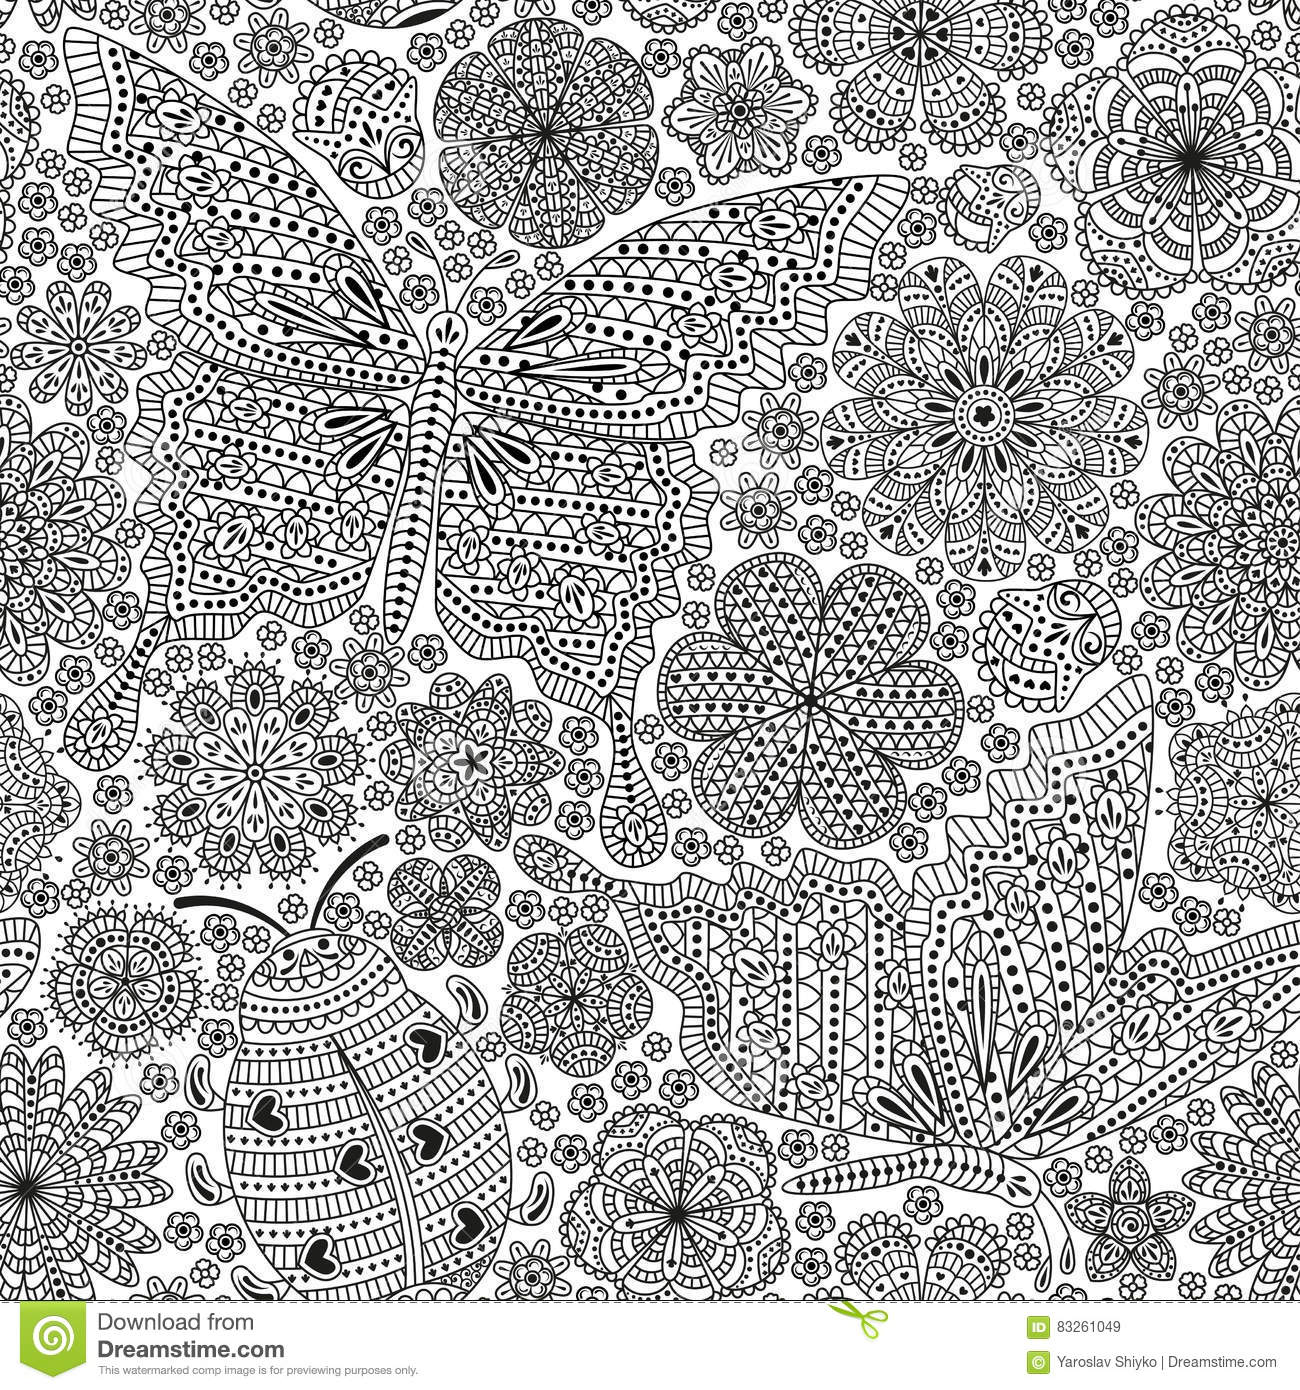 seamless pattern or template with butterfly ladybug and many ornate